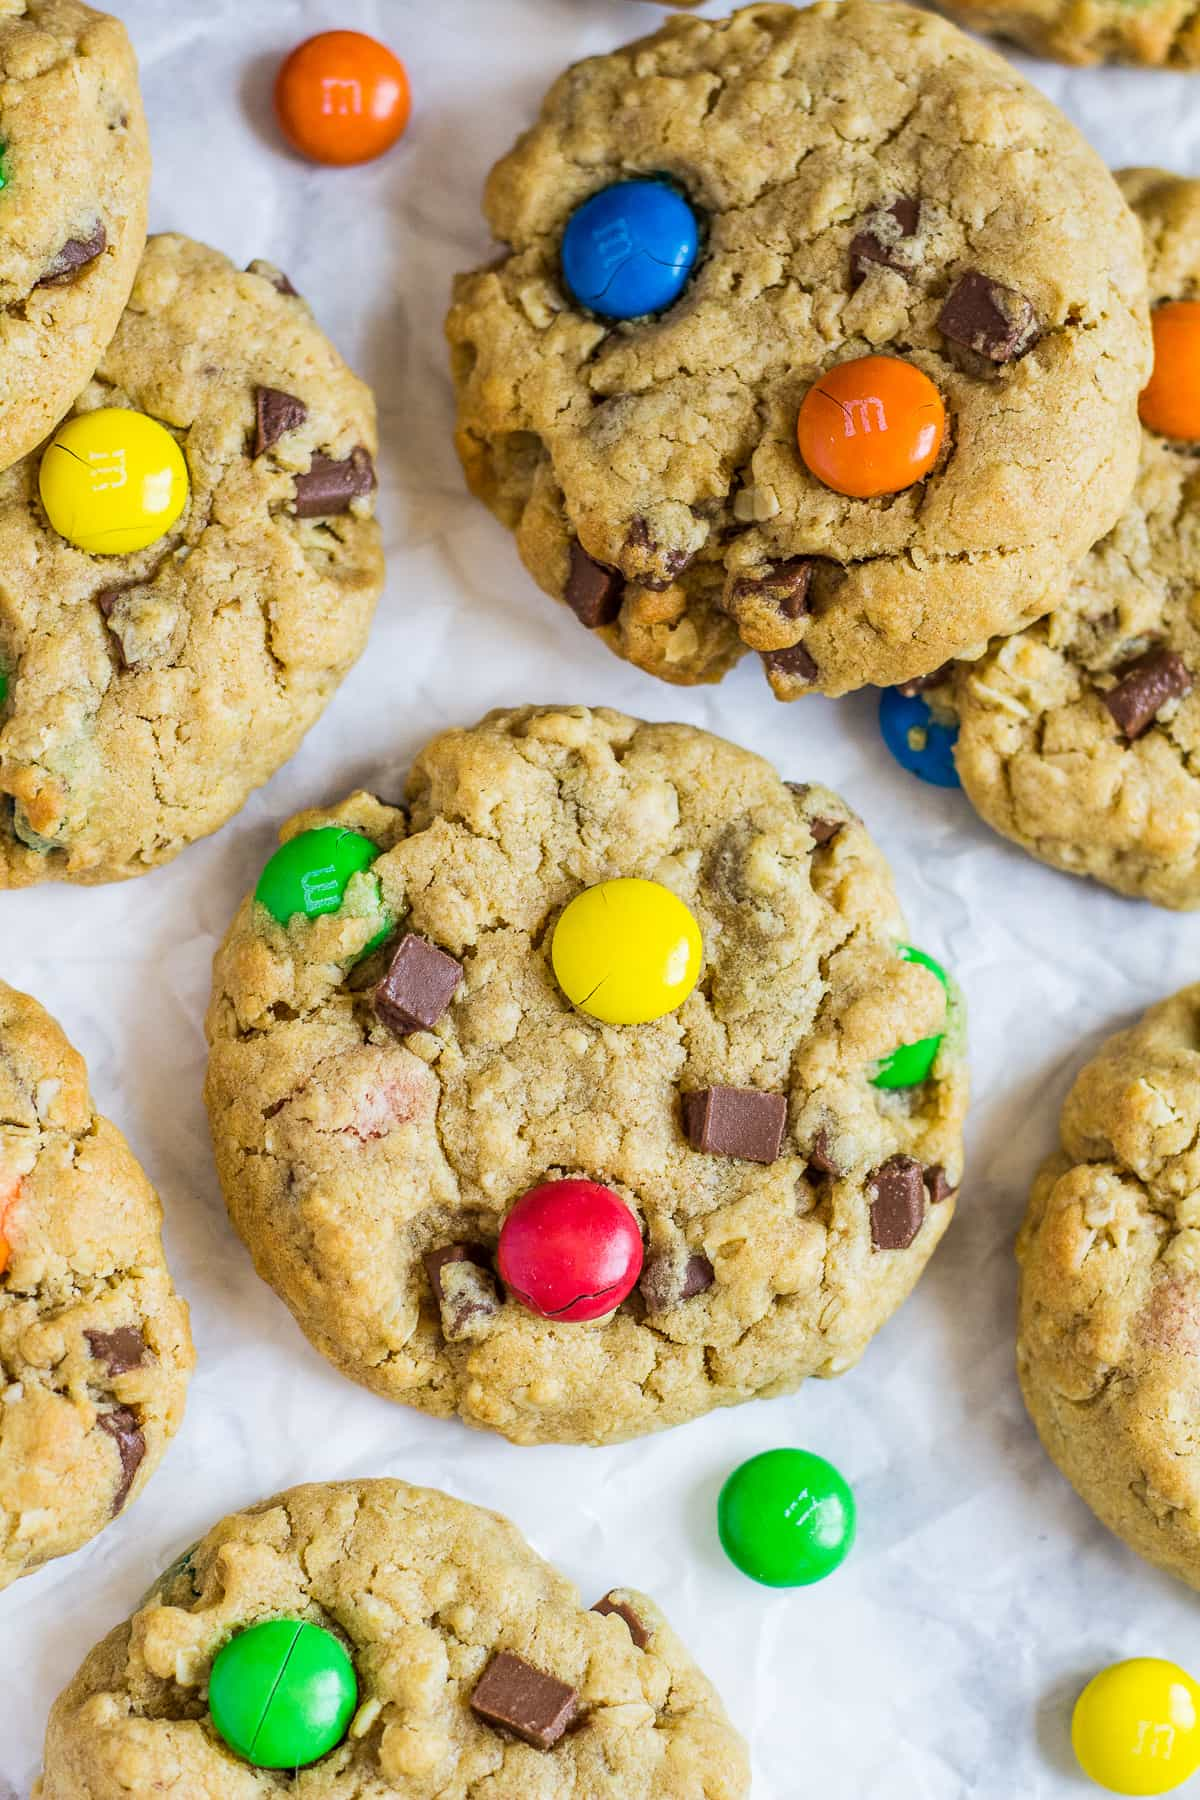 Close-up of monster cookies with M&Ms on parchment paper.